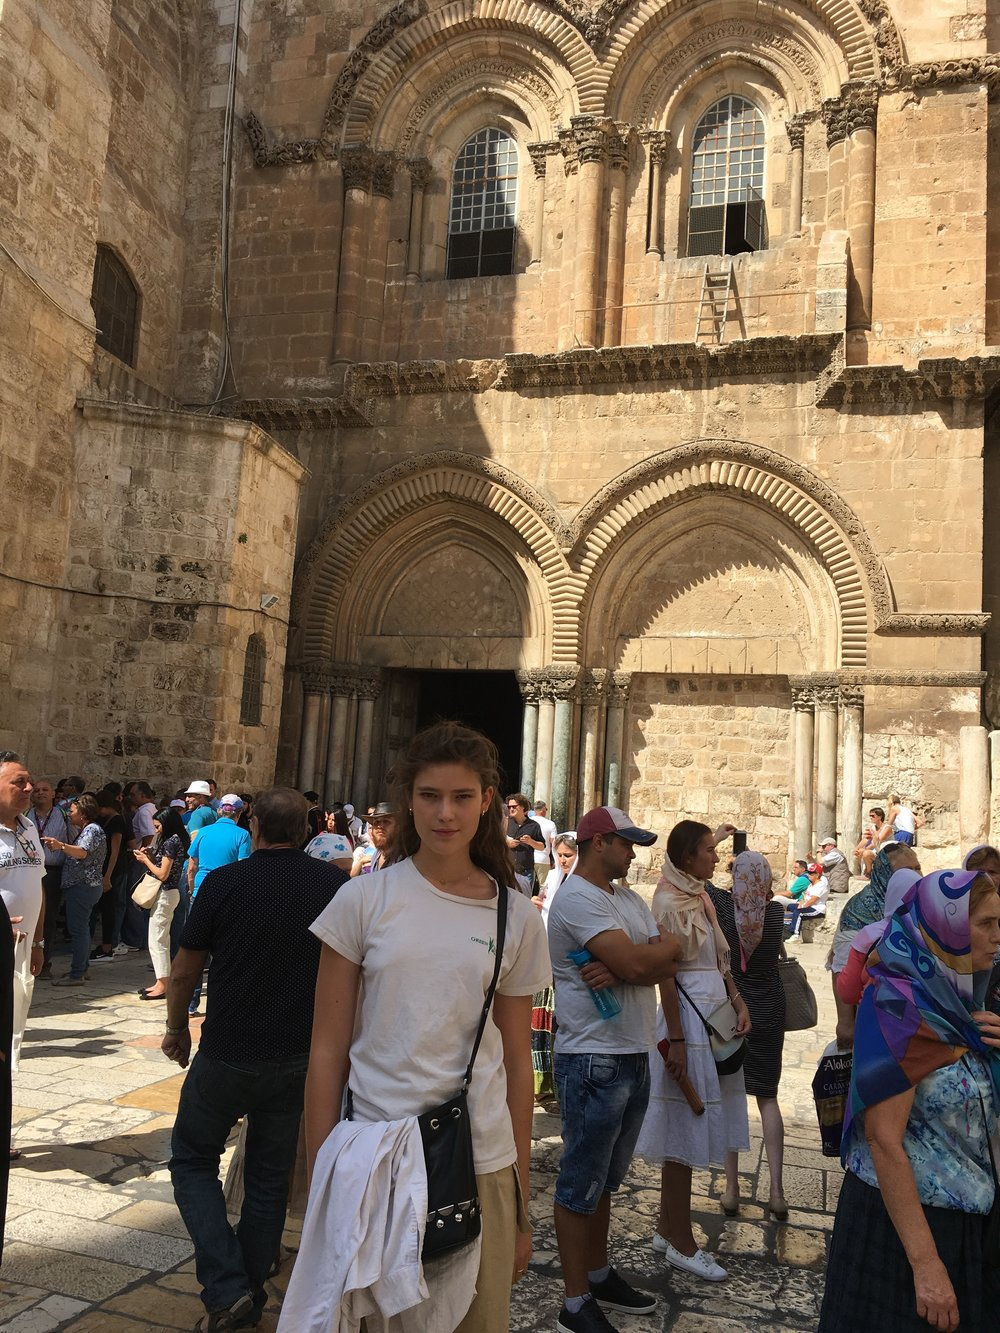 Church of the Holy Sepulcher. The most holy of Christian sites, this cathedral houses the purported tomb where Christ was interred once taken from the Cross.